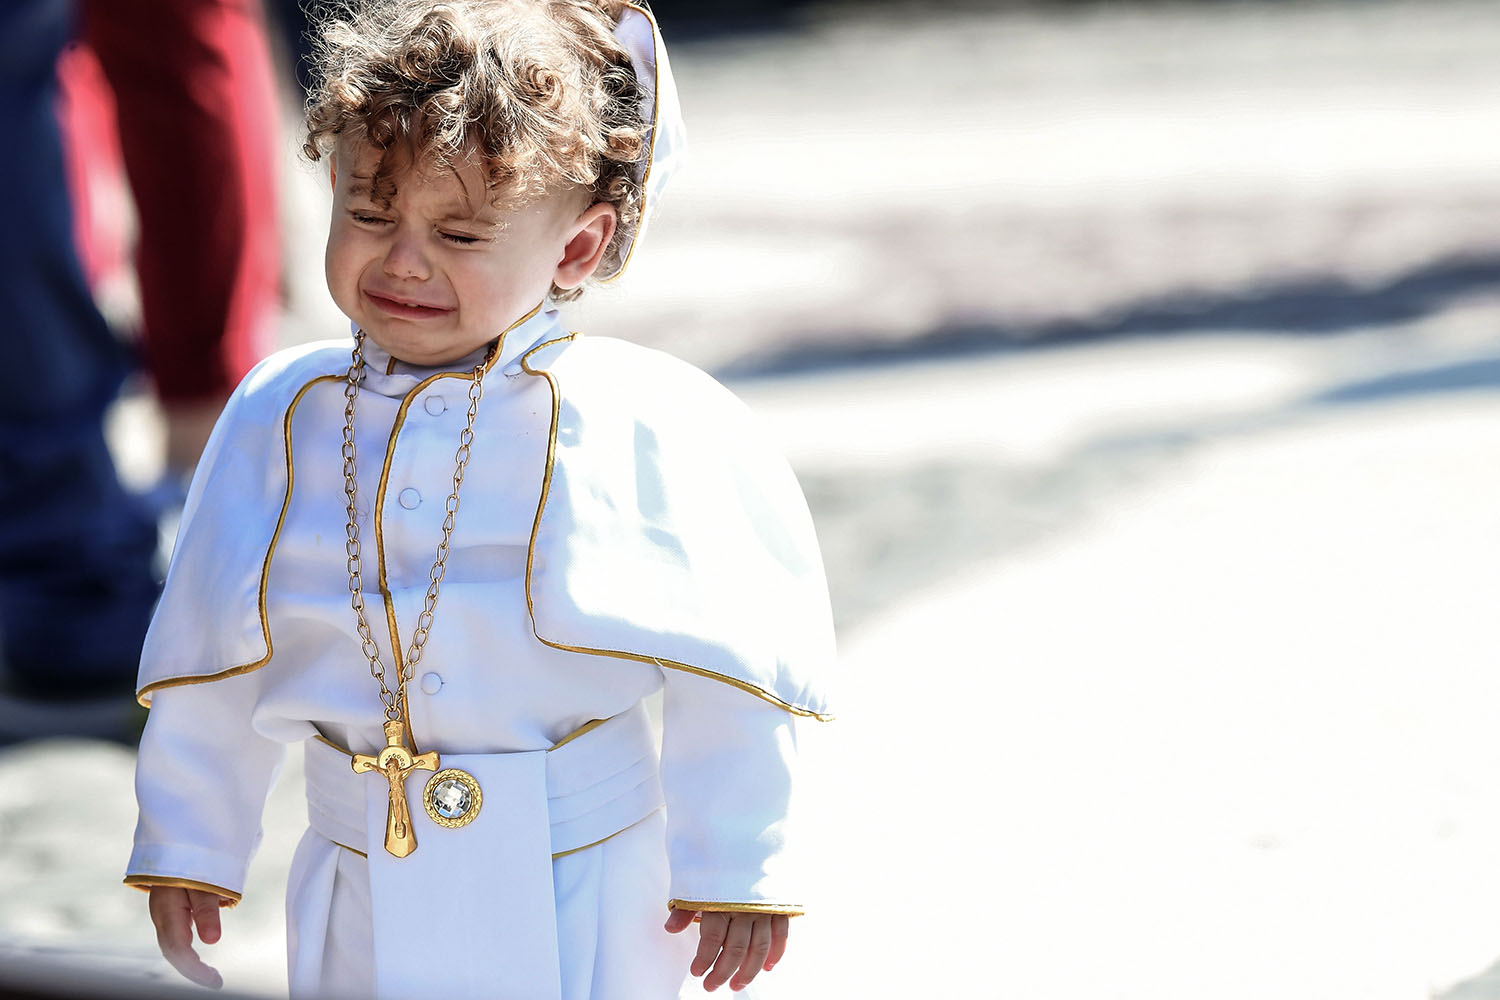 A child dressed as a Pope cries during the weekly Angelus prayer at St. Peter's square in the Vatican on March 3. TIZIANA FABI/AFP/Getty Images